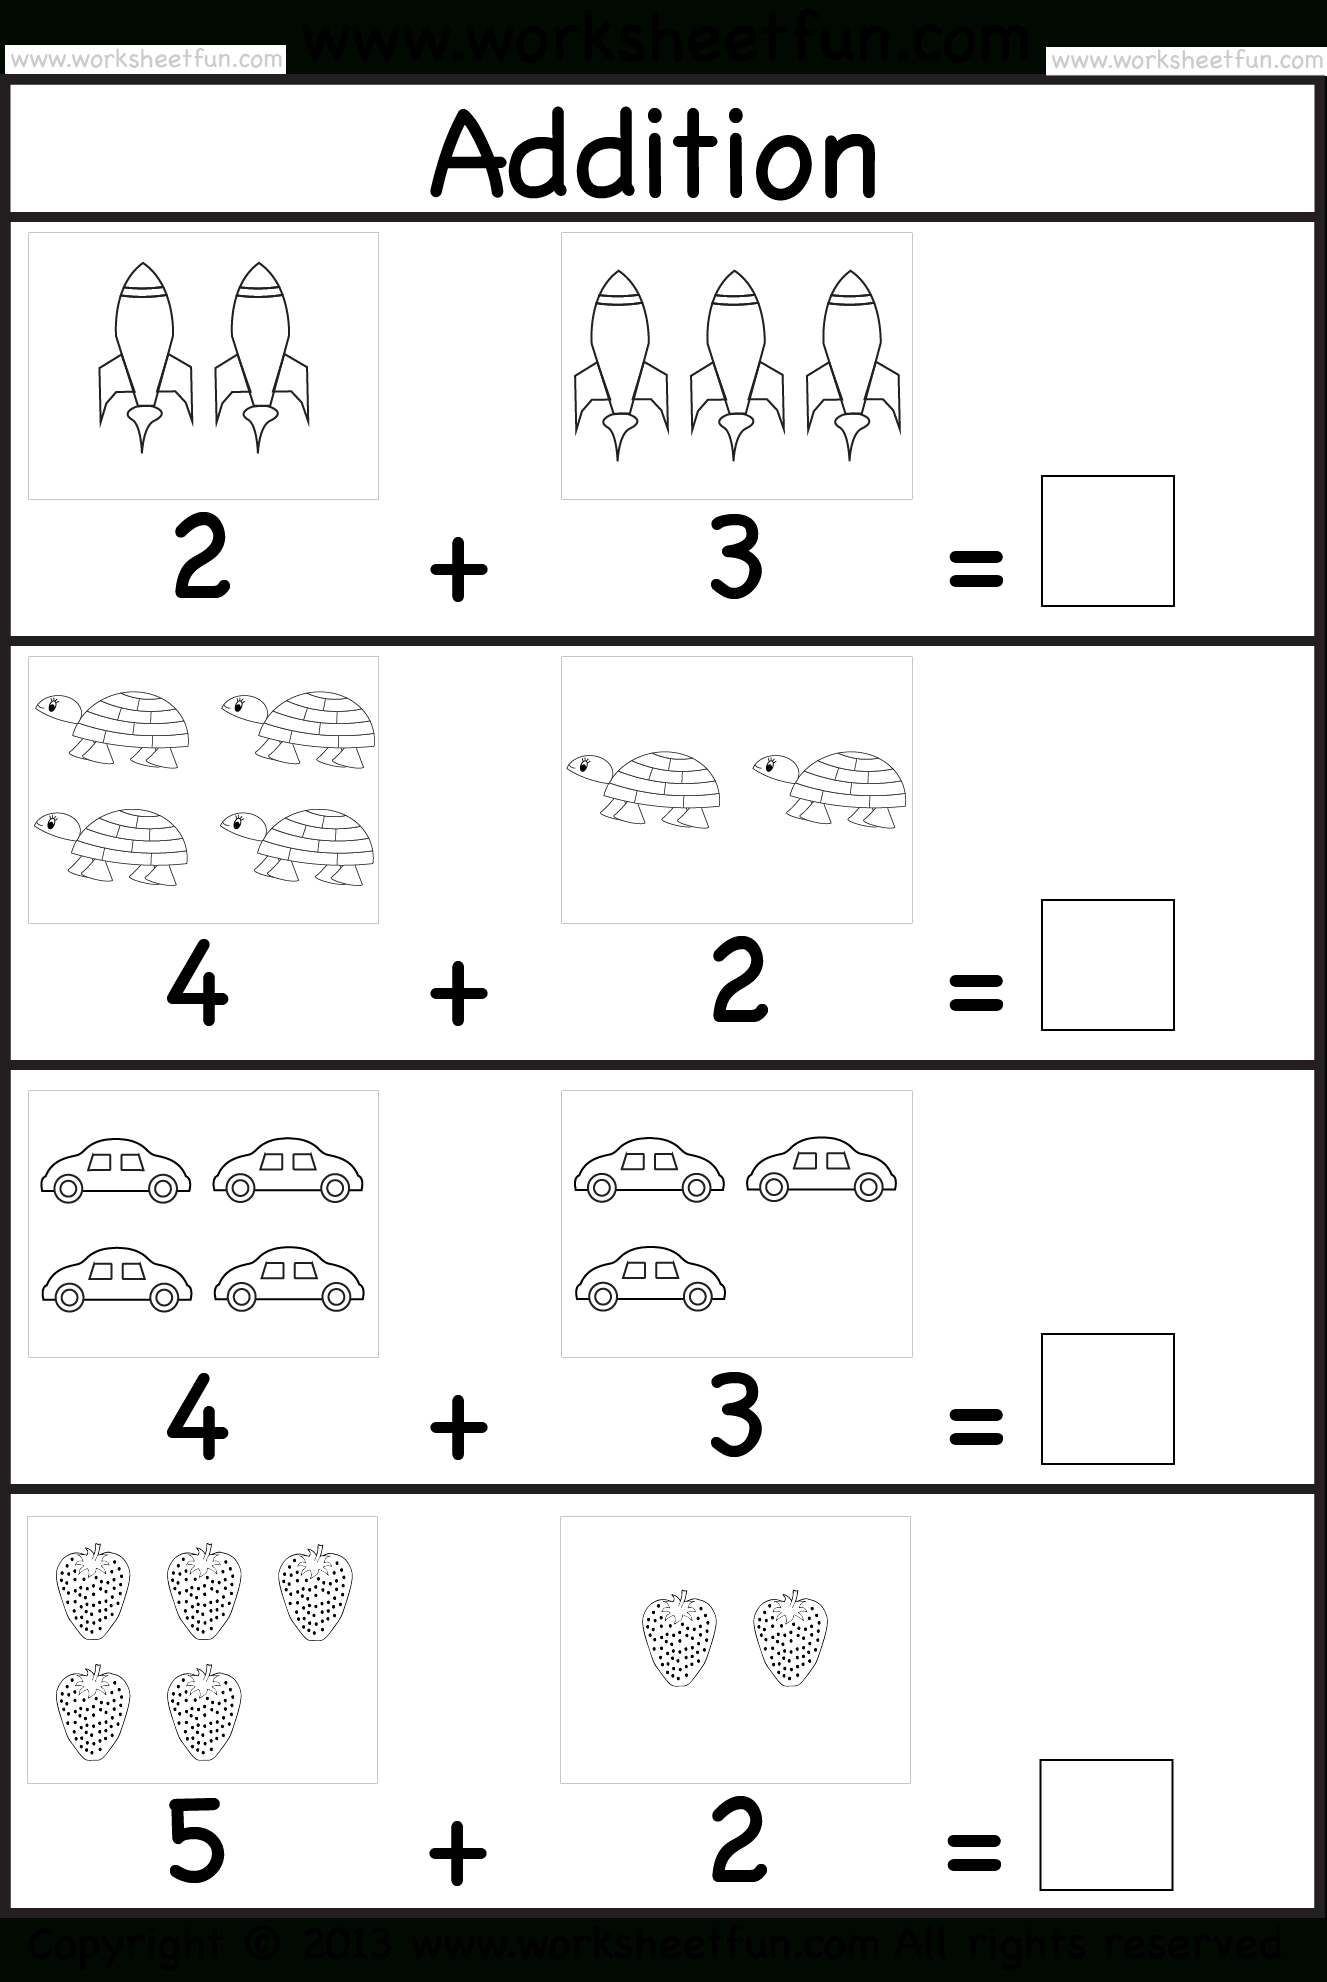 Addition Worksheet. This Site Has Great Free Worksheets For - Free Printable Preschool Addition Worksheets